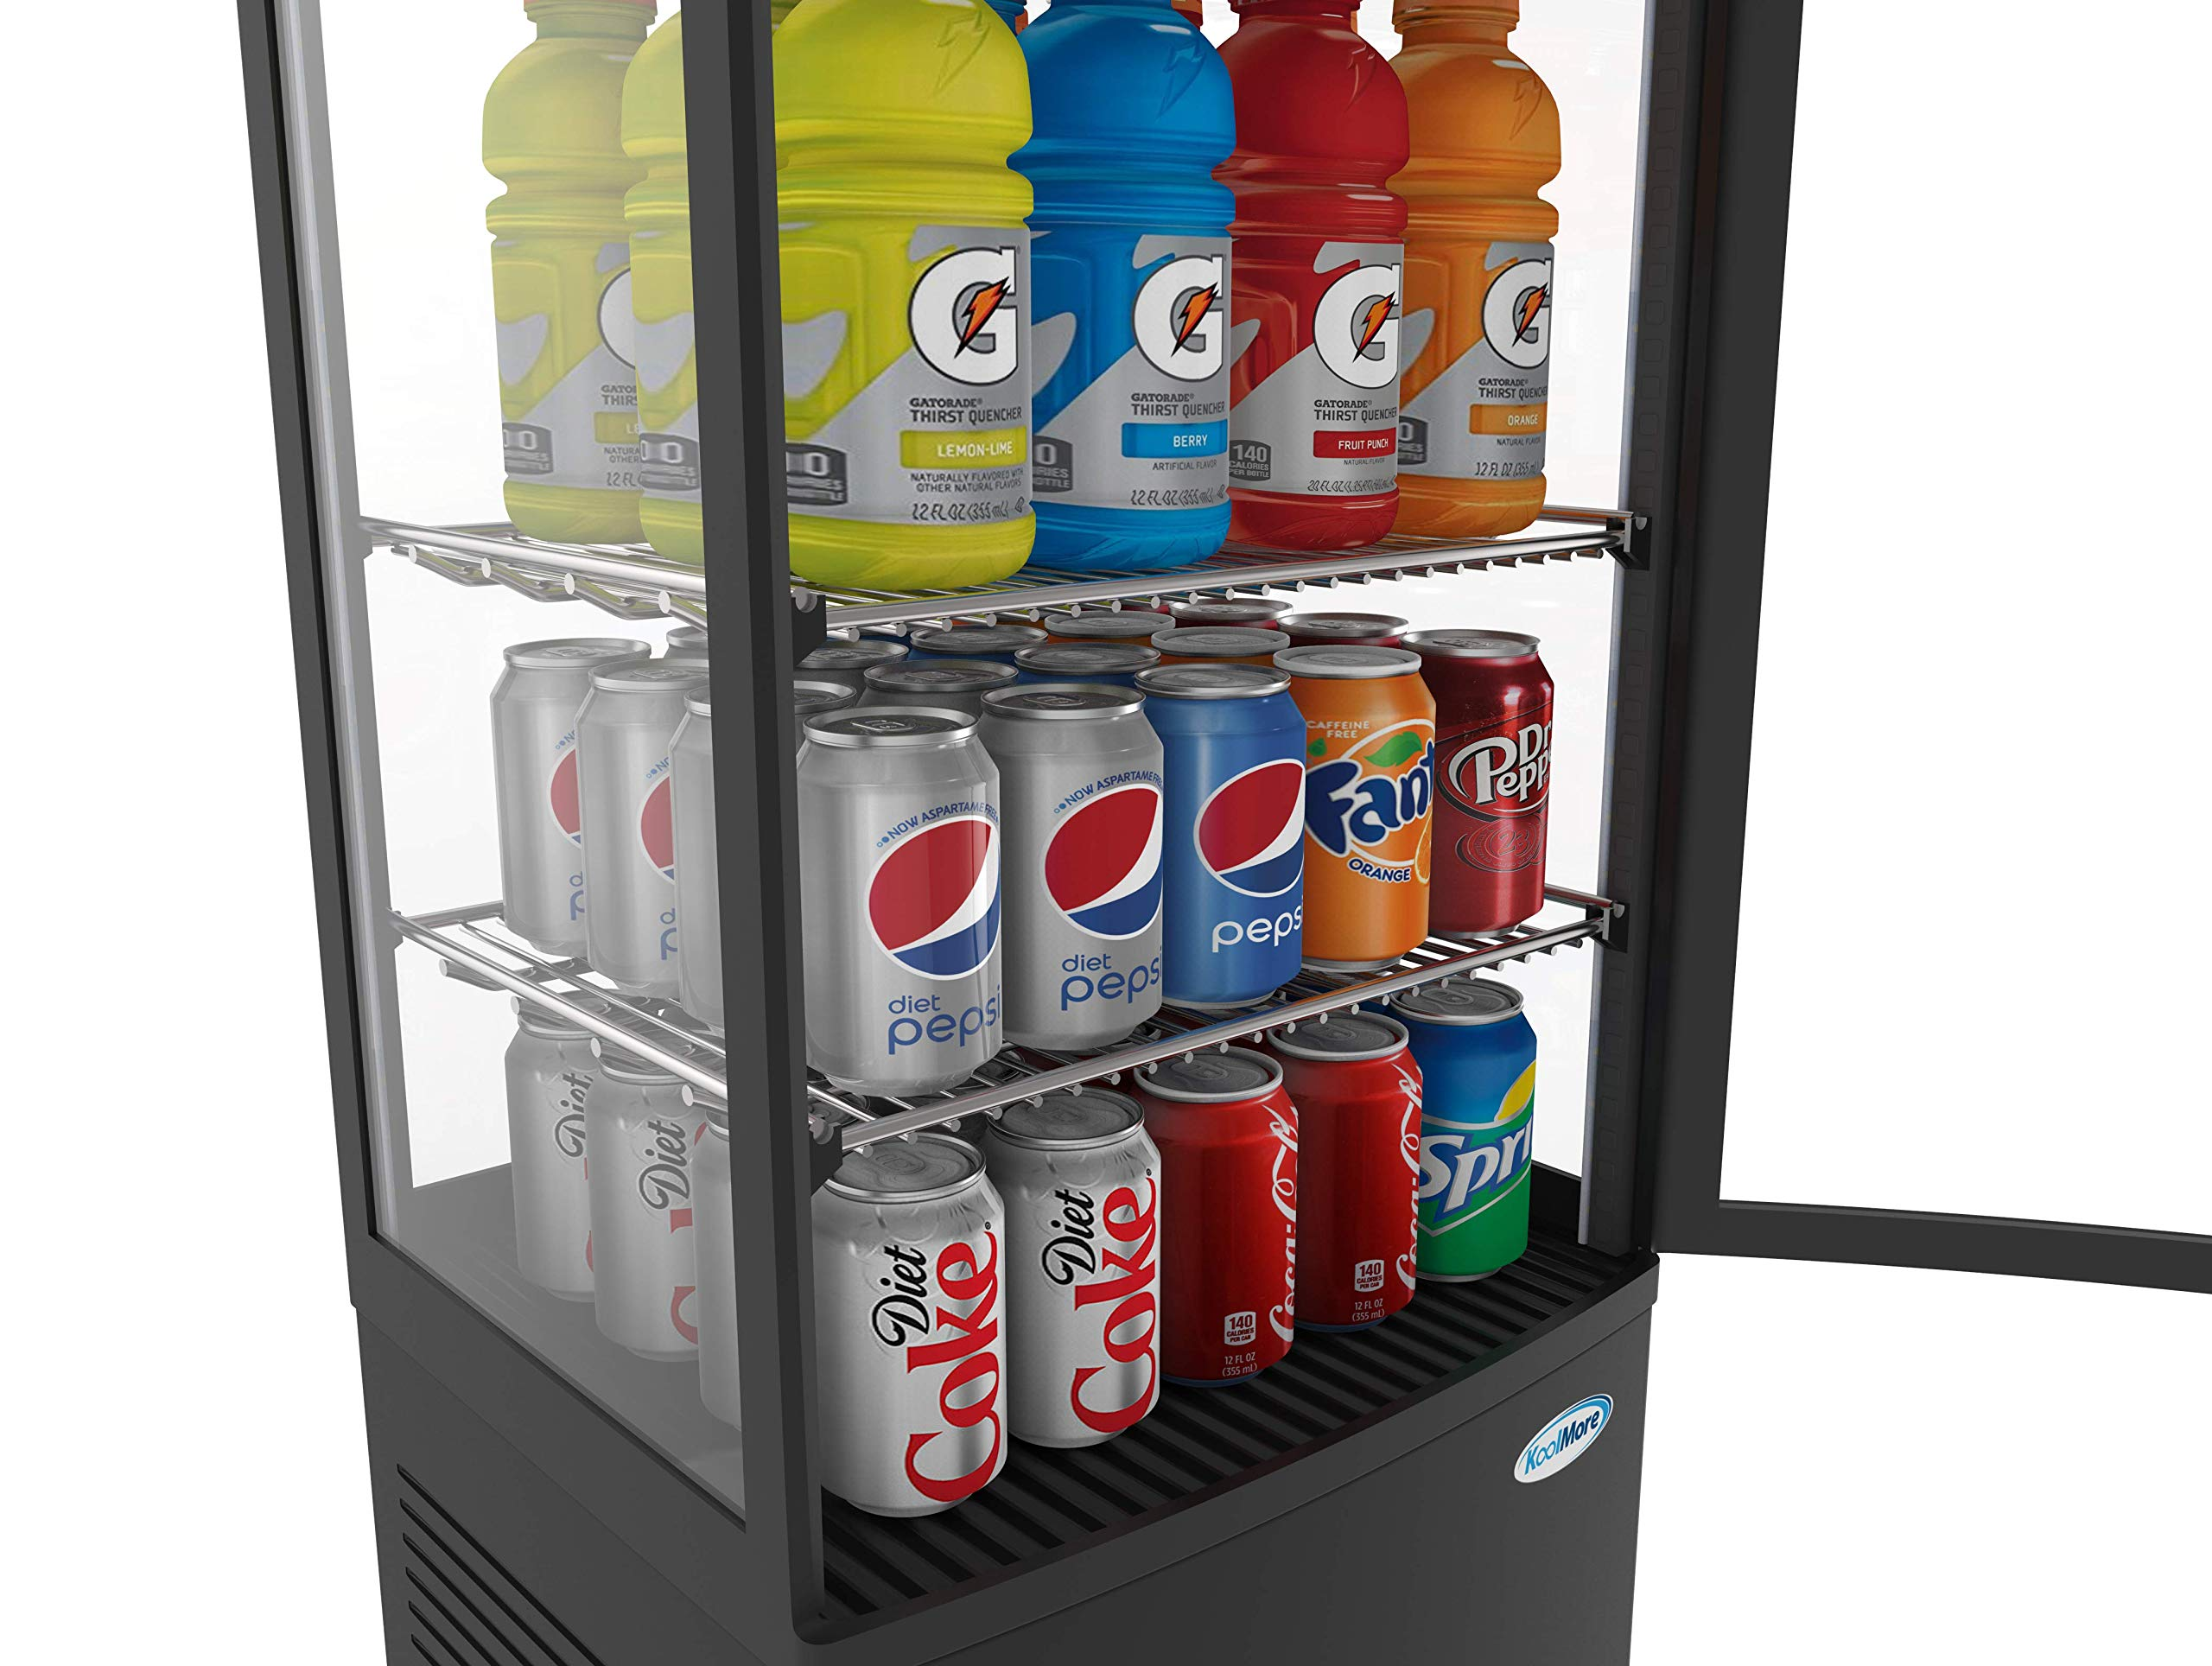 KoolMore Countertop Refrigerator Display Case Commercial Beverage Cooler with LED Lighting - 3 cu. ft Capacity by KoolMore (Image #8)